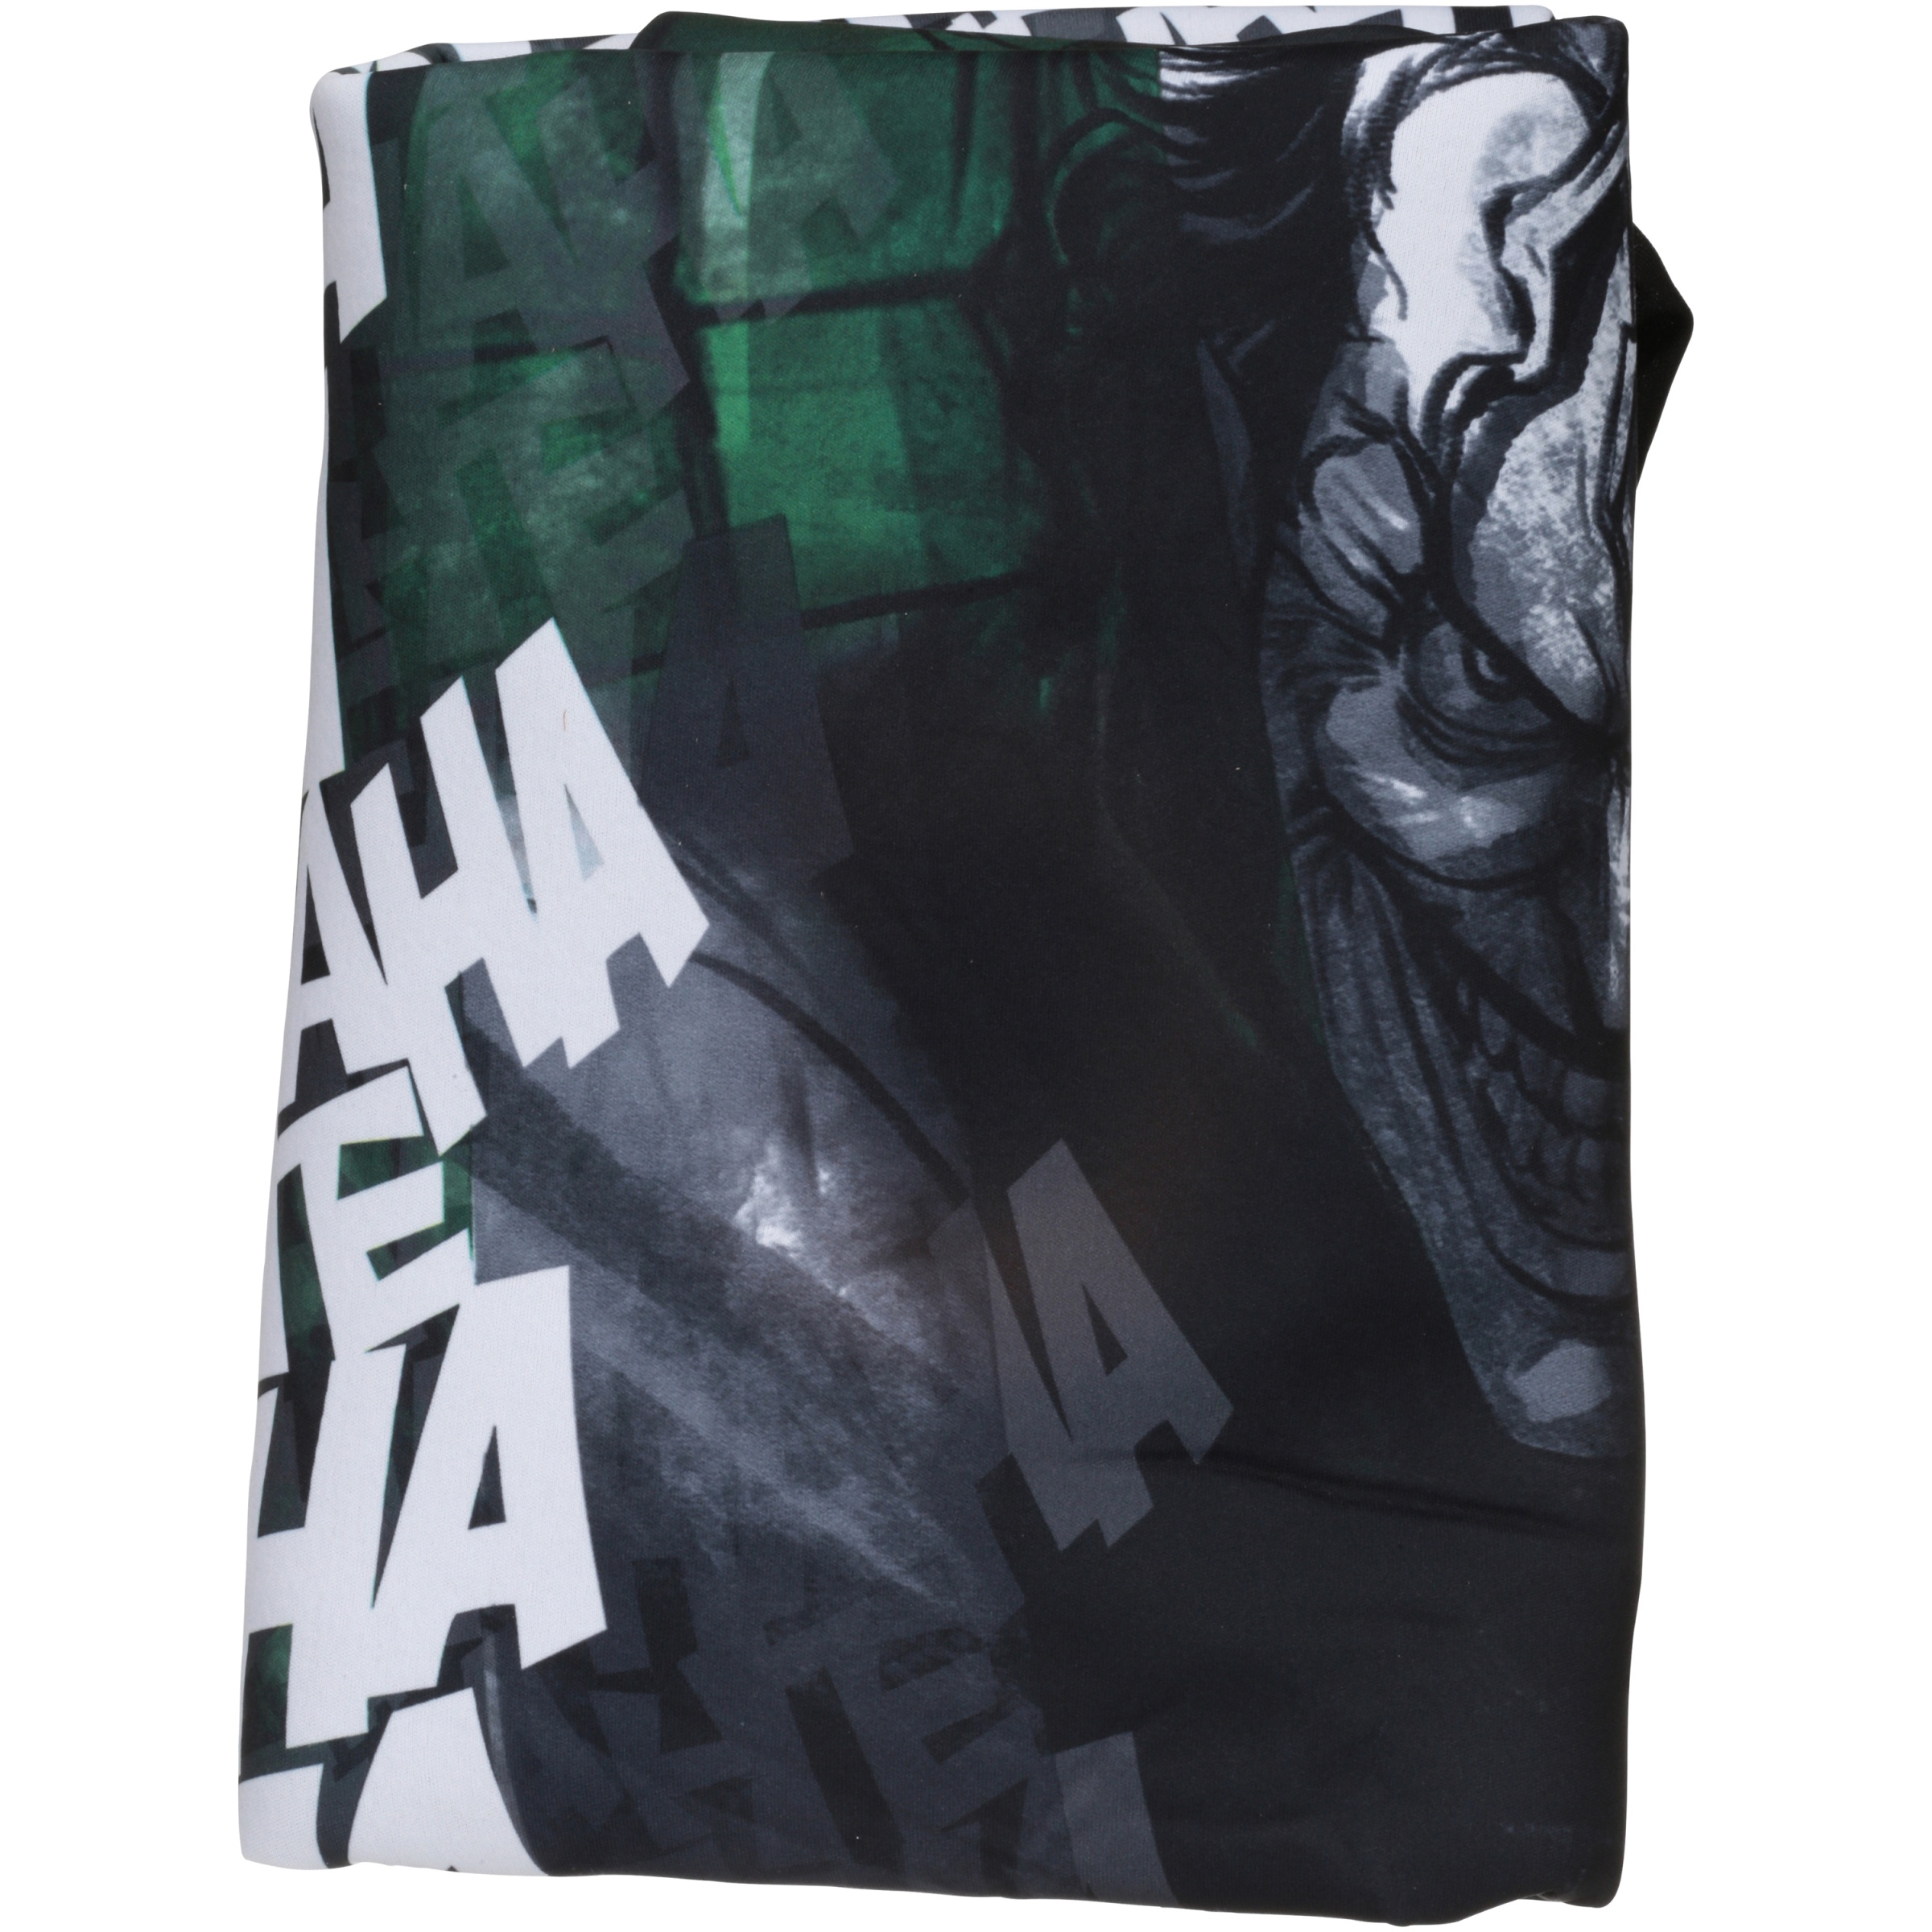 Batman Joker Lowback Seat Cover with Headrest Cover